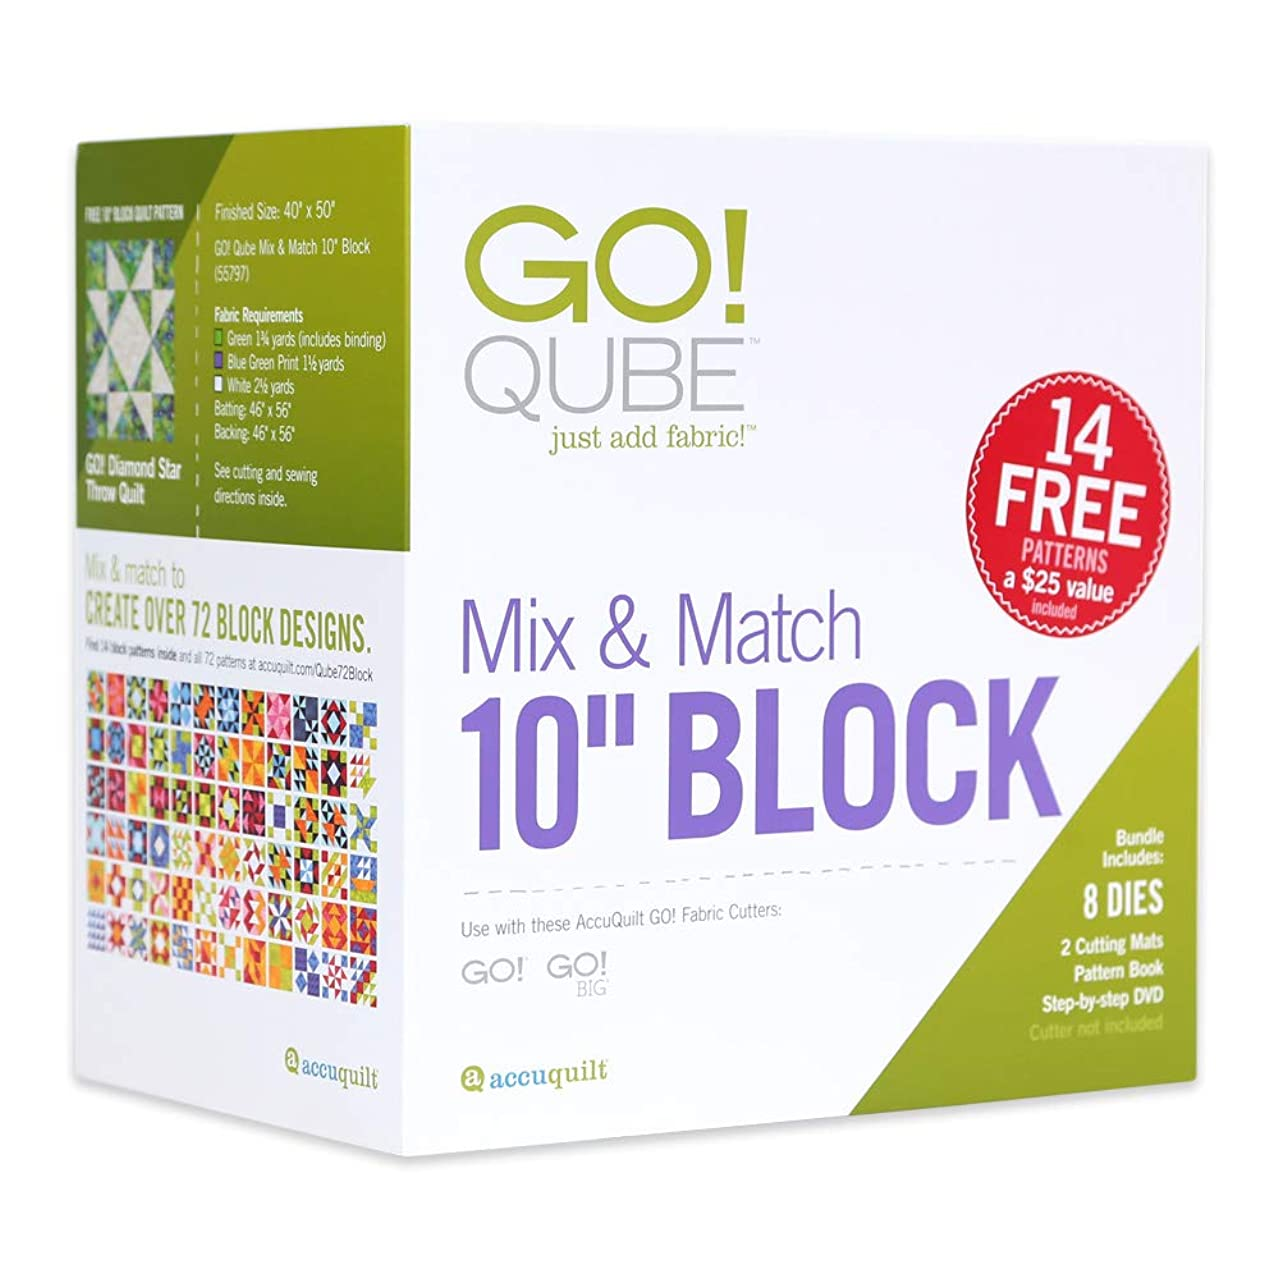 AccuQuilt GO! Fabric Cutting Dies; GO! Qube Mix & Match 10